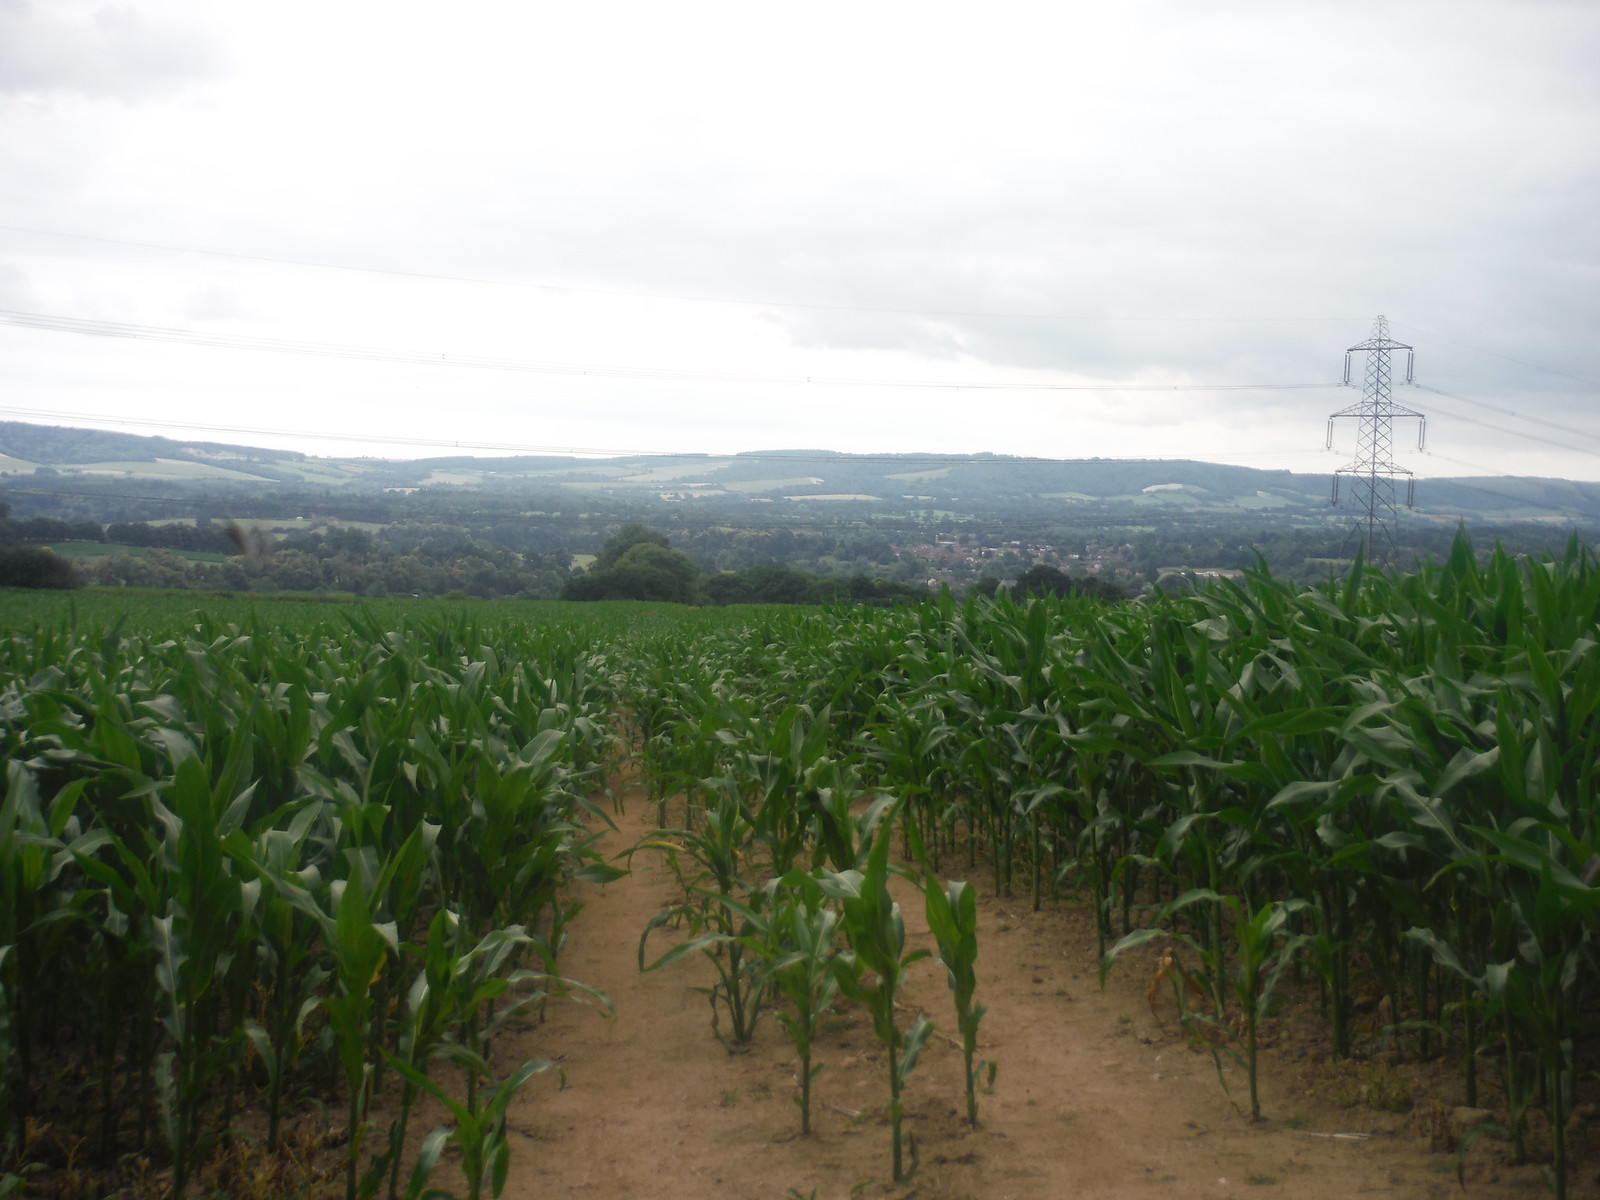 Arable Fields & Pylons? Essex? No: West Sussex! Approching Easebourne SWC Walk 218 Haslemere to Midhurst (The Midhurst Way)